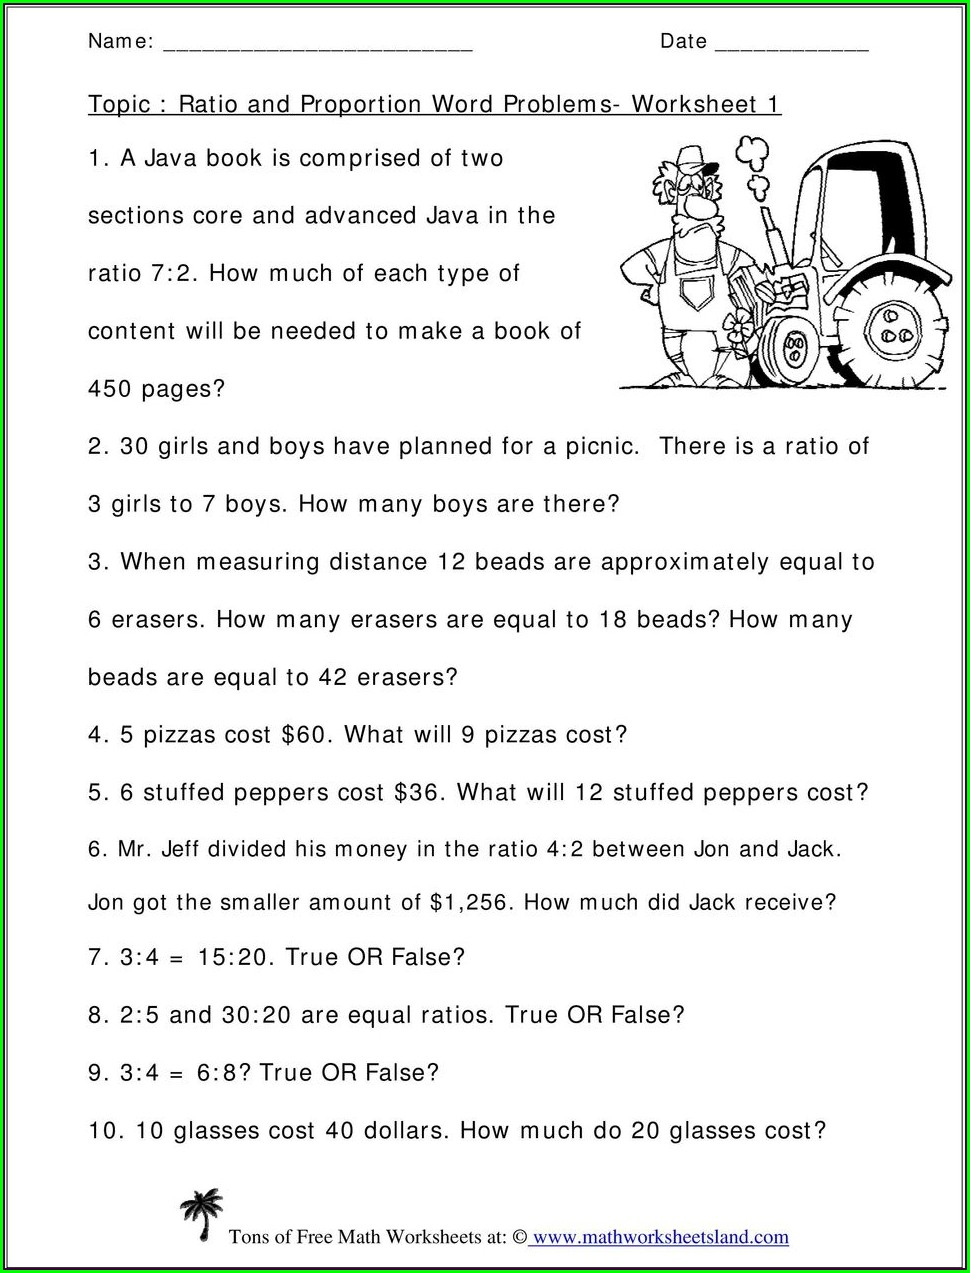 8th Grade Ratio And Proportion Word Problems Worksheet With Answers